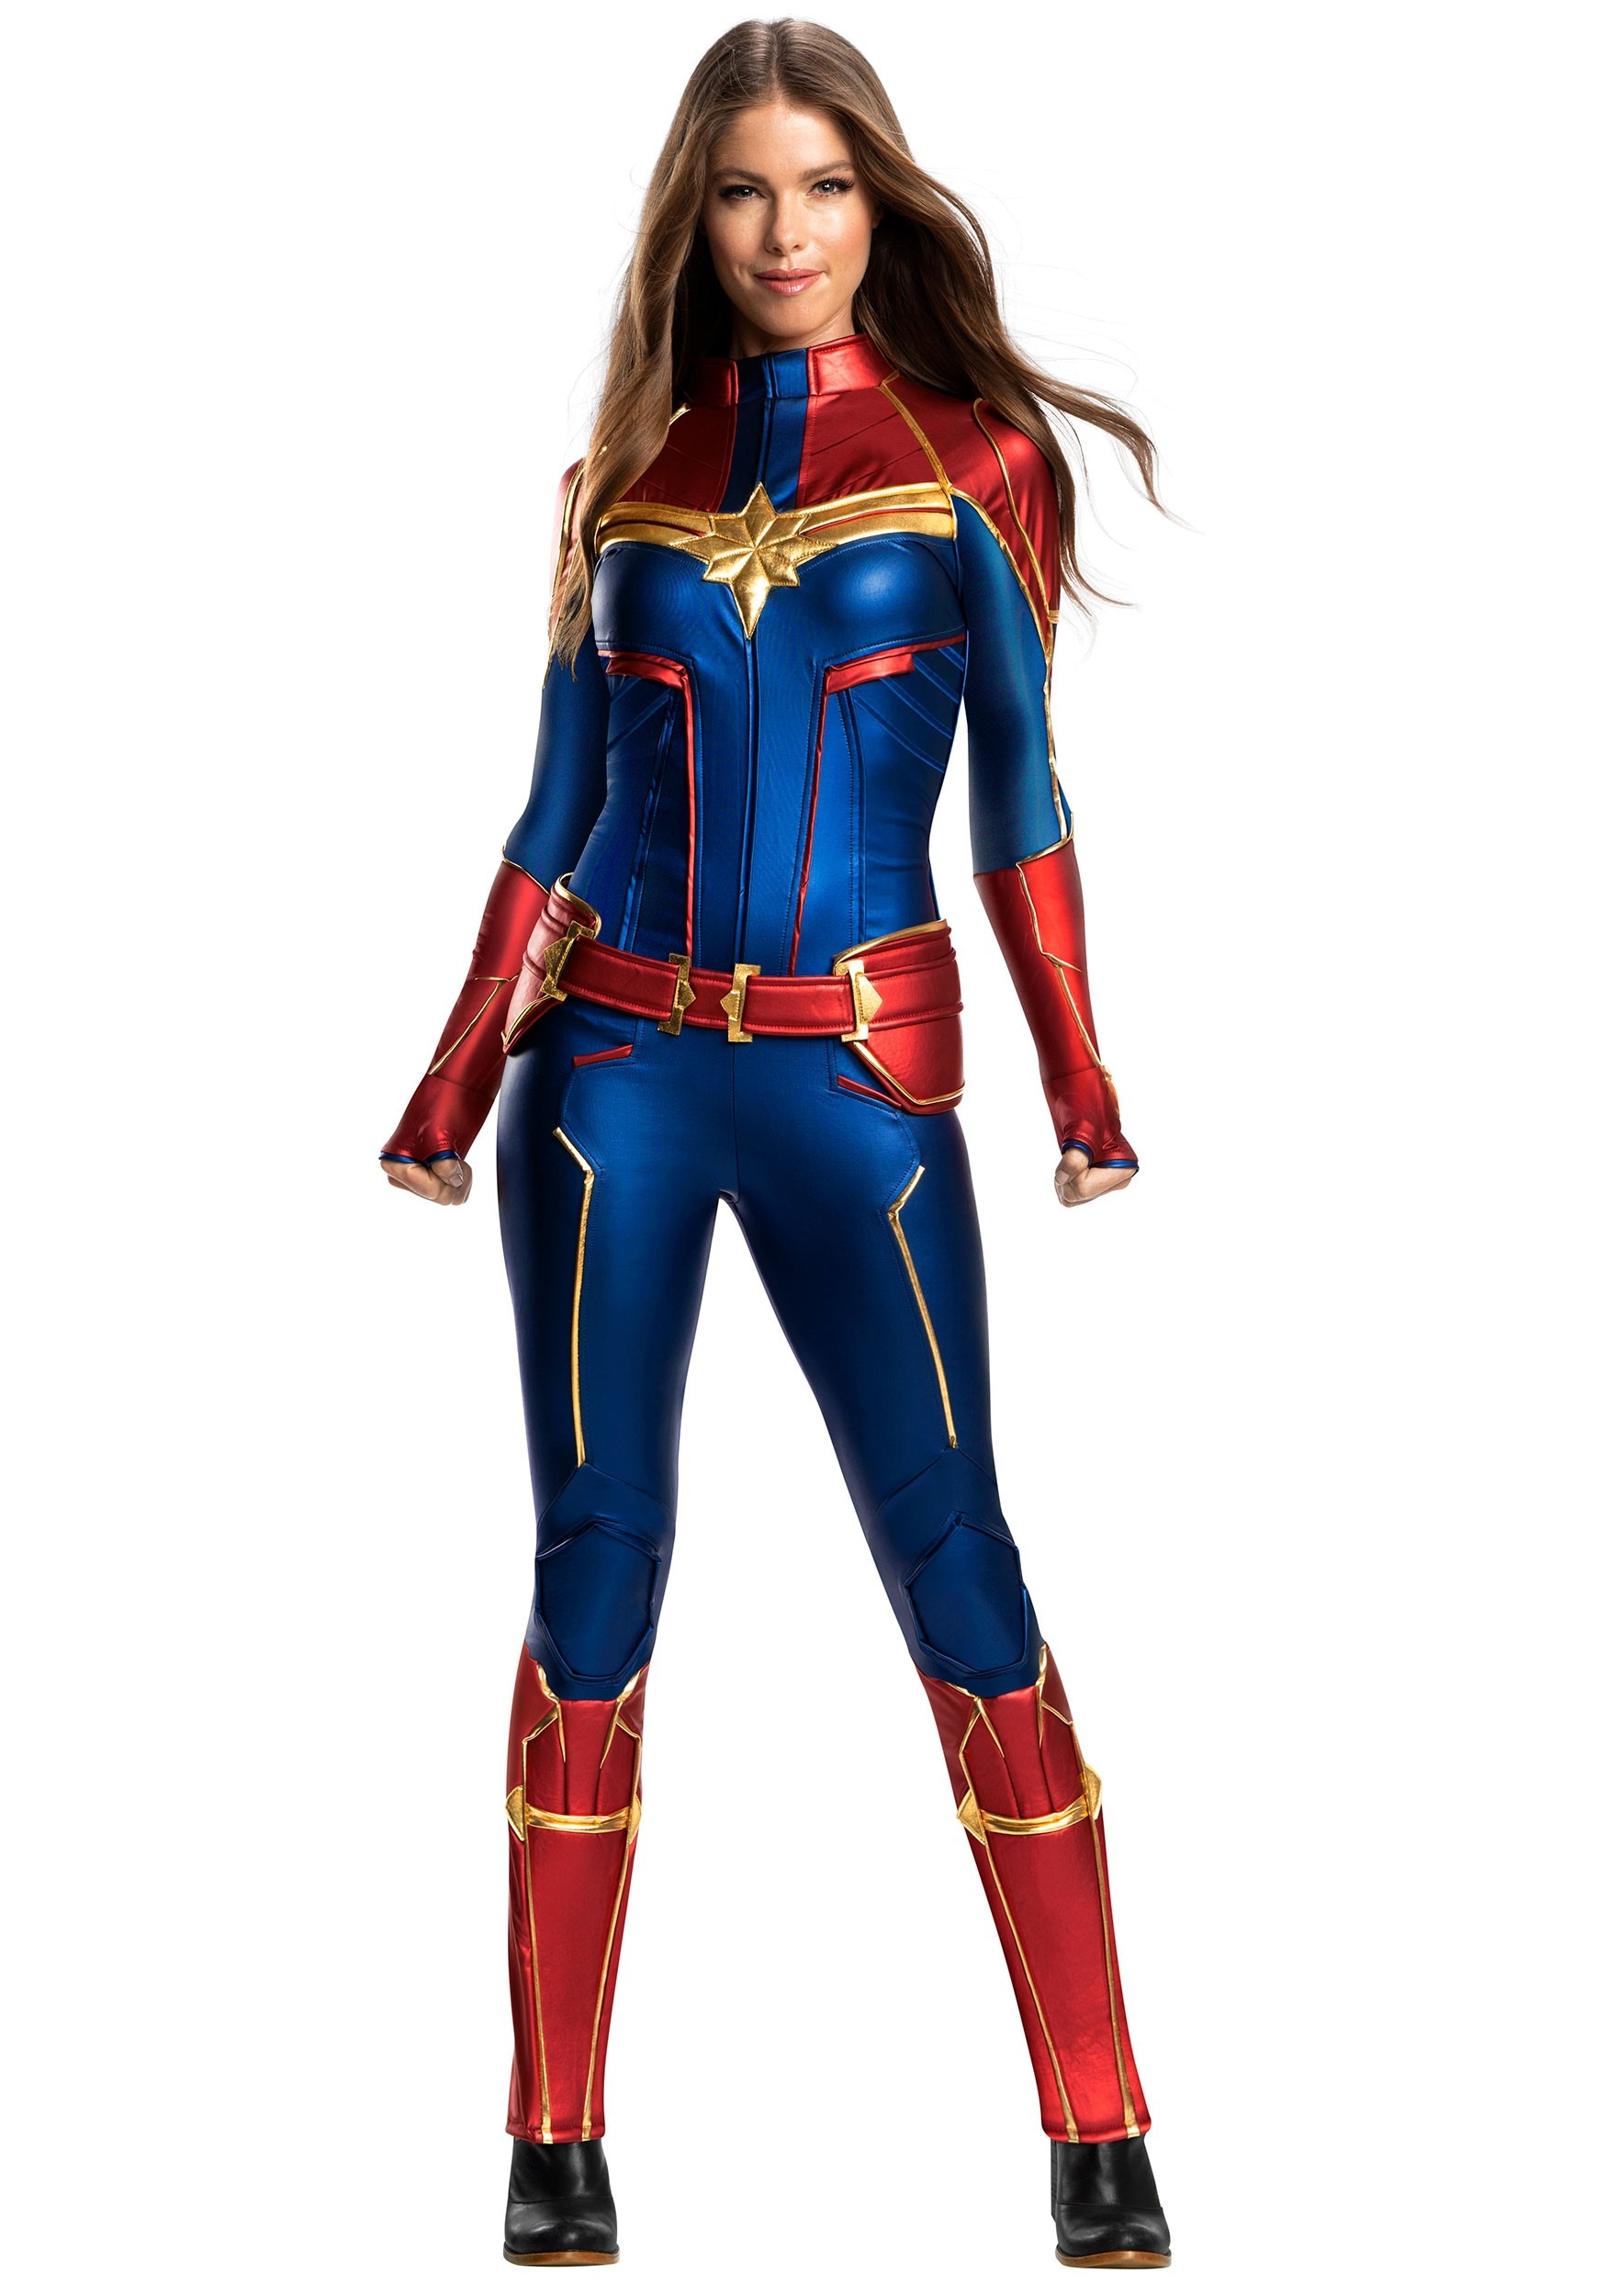 Captain Marvel Grand Heritage Costume For Women Get your courageous youngster ready for epic adventures as one of the universe's most powerful heroes in this awesome costume inspired by the forthcoming blockbuster, marvel's captain you may experience issues while visiting marvel shop with your current web browser version/configuration. women s captain marvel grand heritage costume